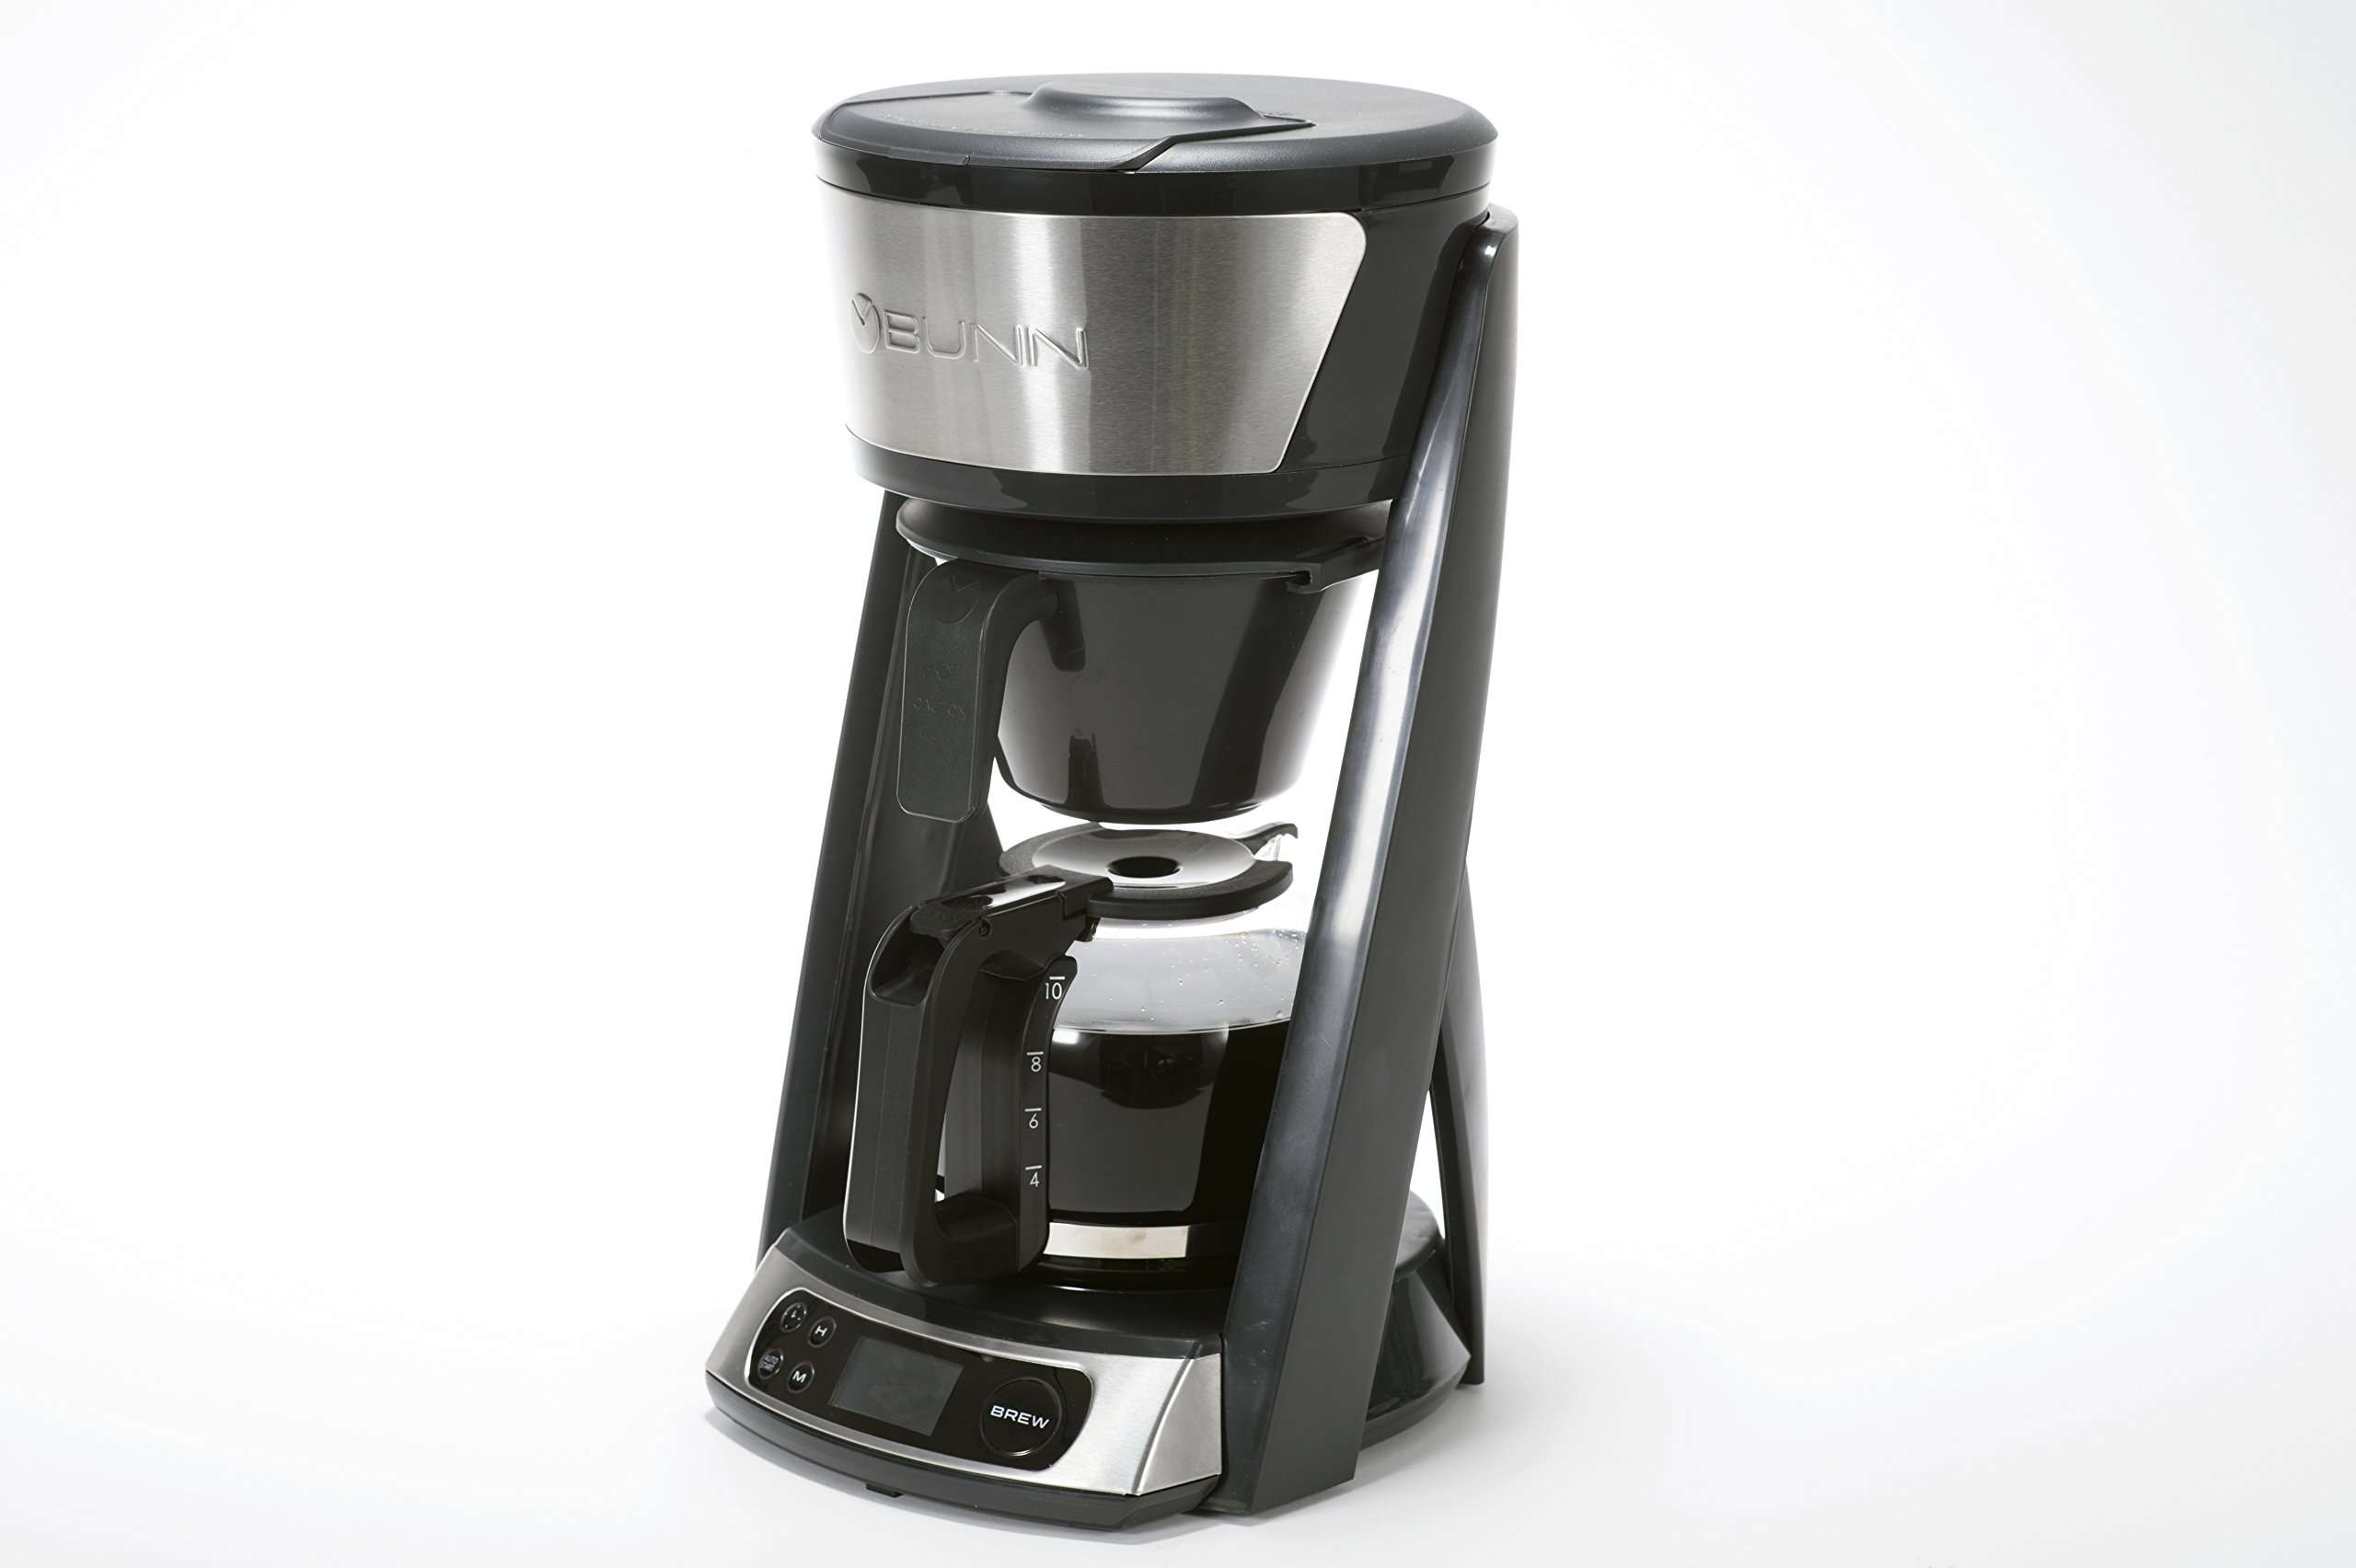 BUNN HB Heat N Brew Programmable Coffee Maker 10 cup Stainless Steel by BUNN (Image #2)